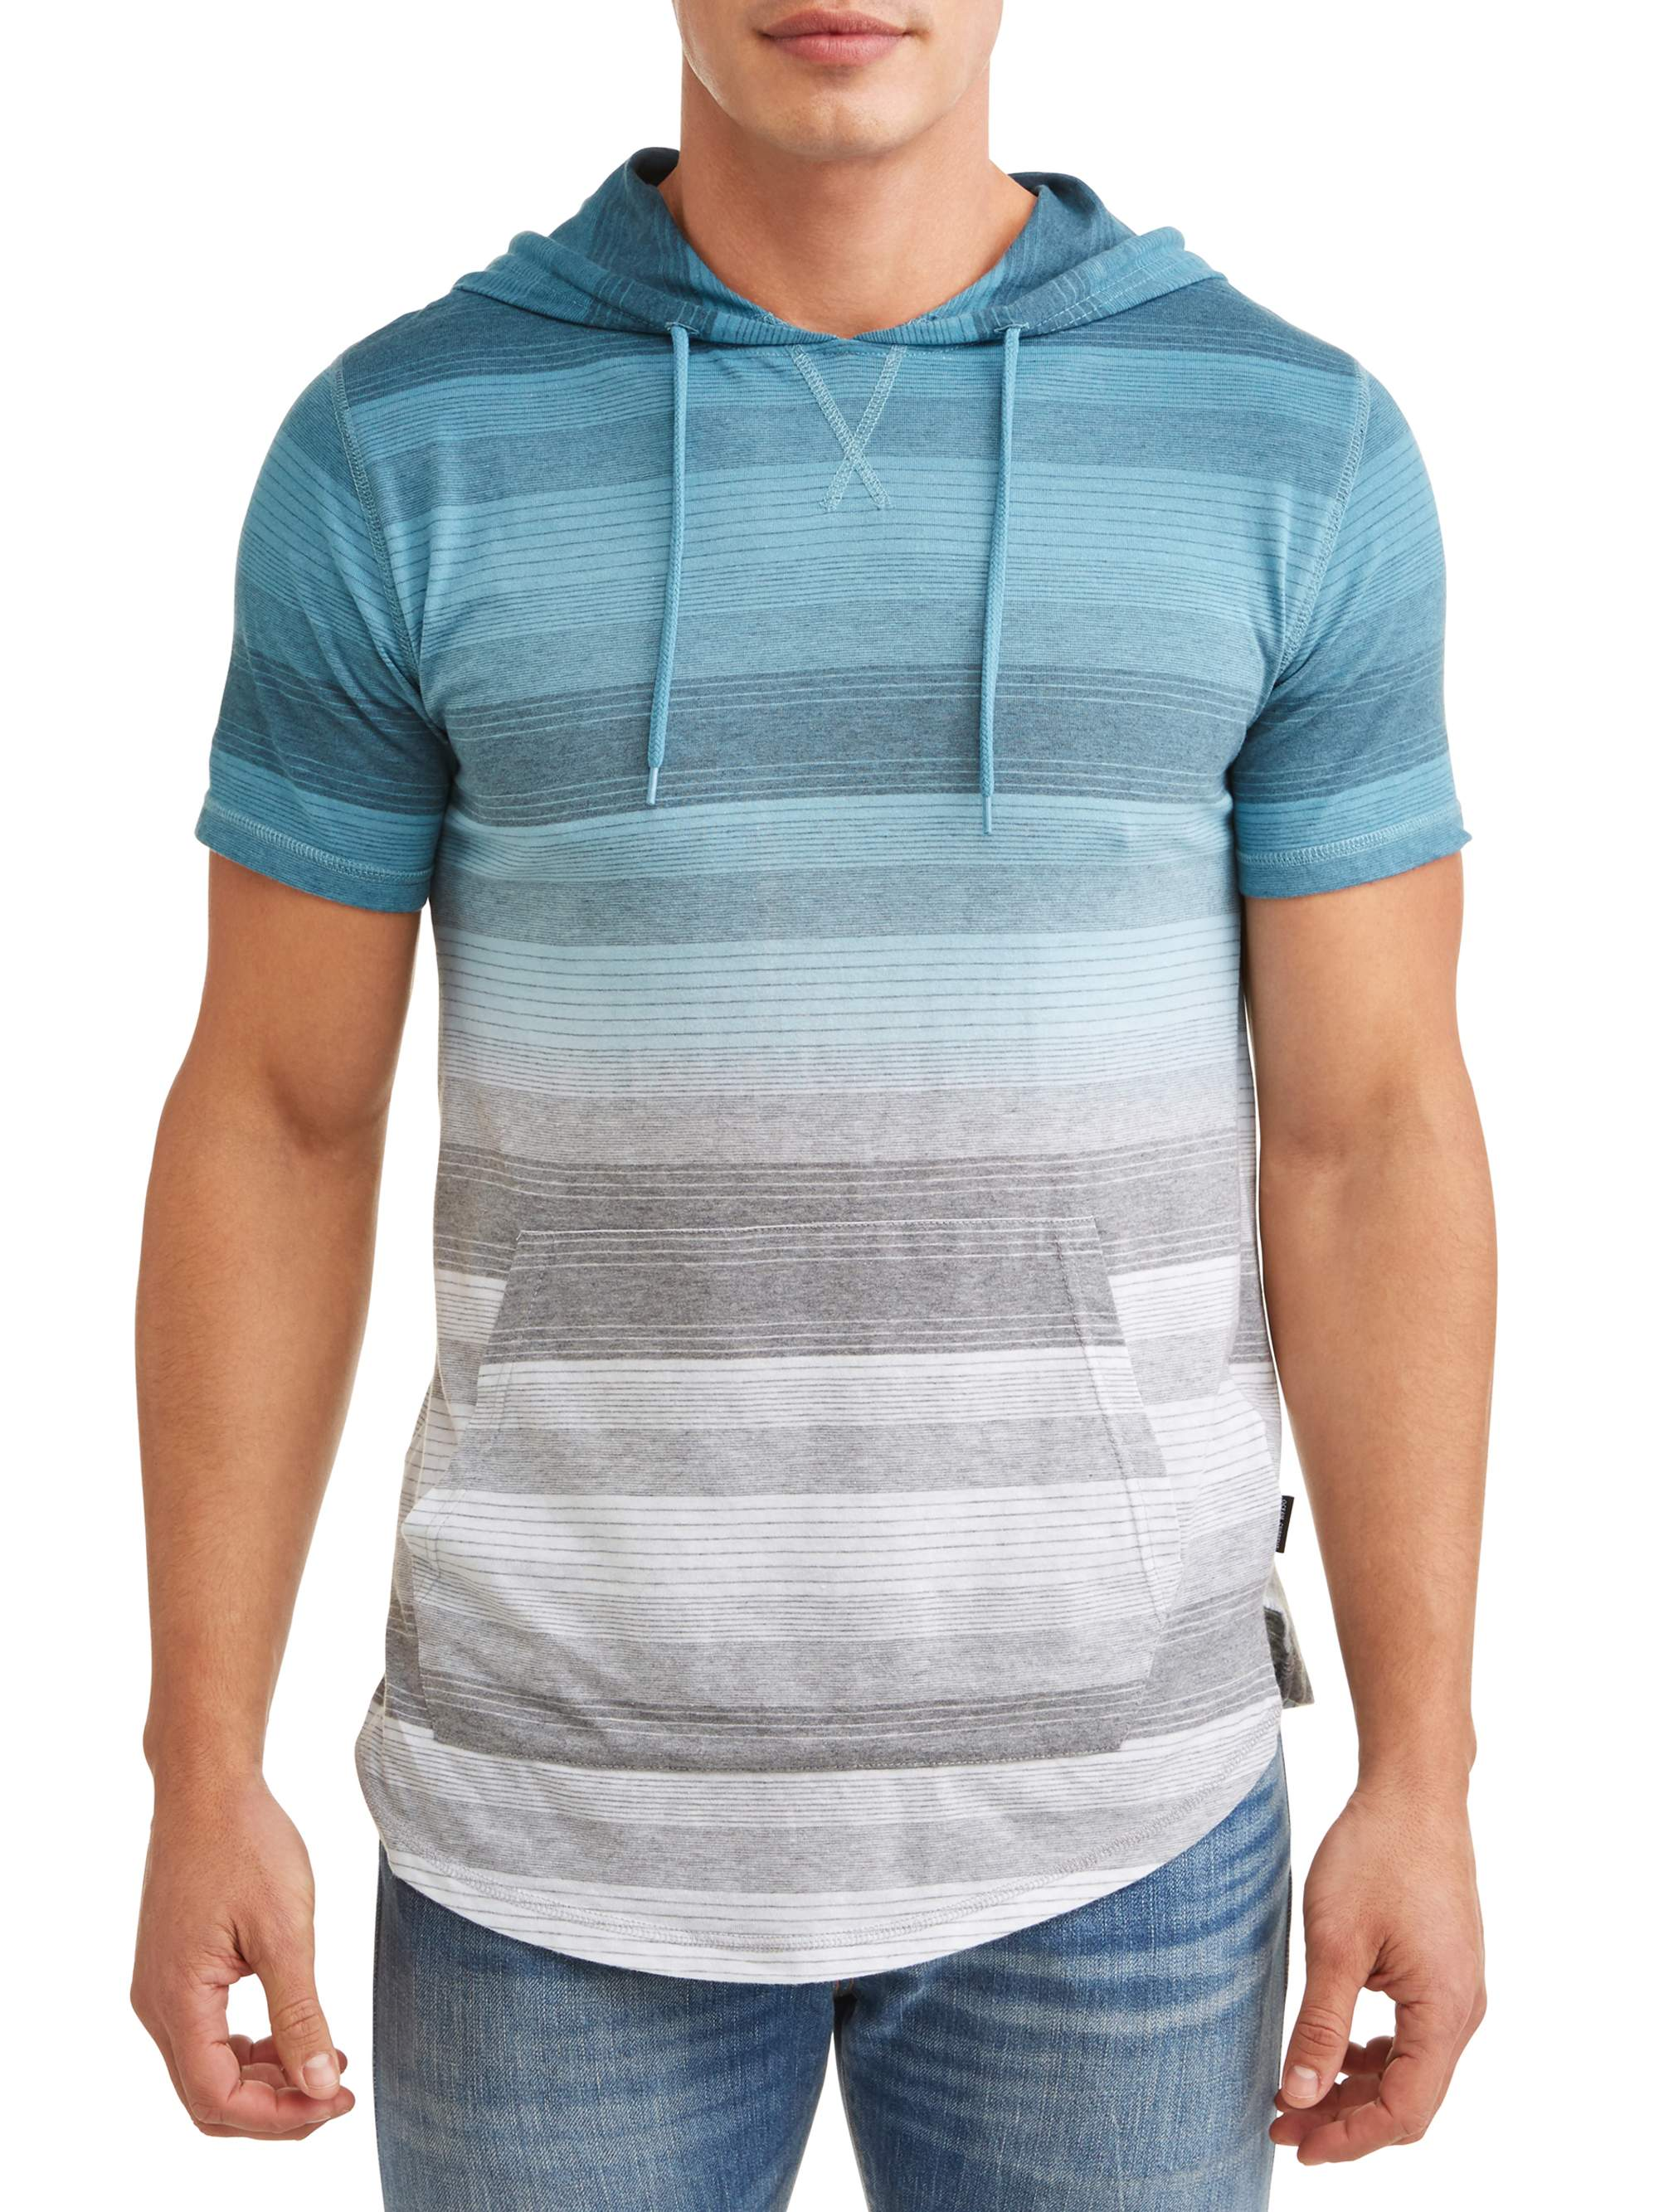 Men's Valley Dolphin Short Sleeve Knit Hoodie